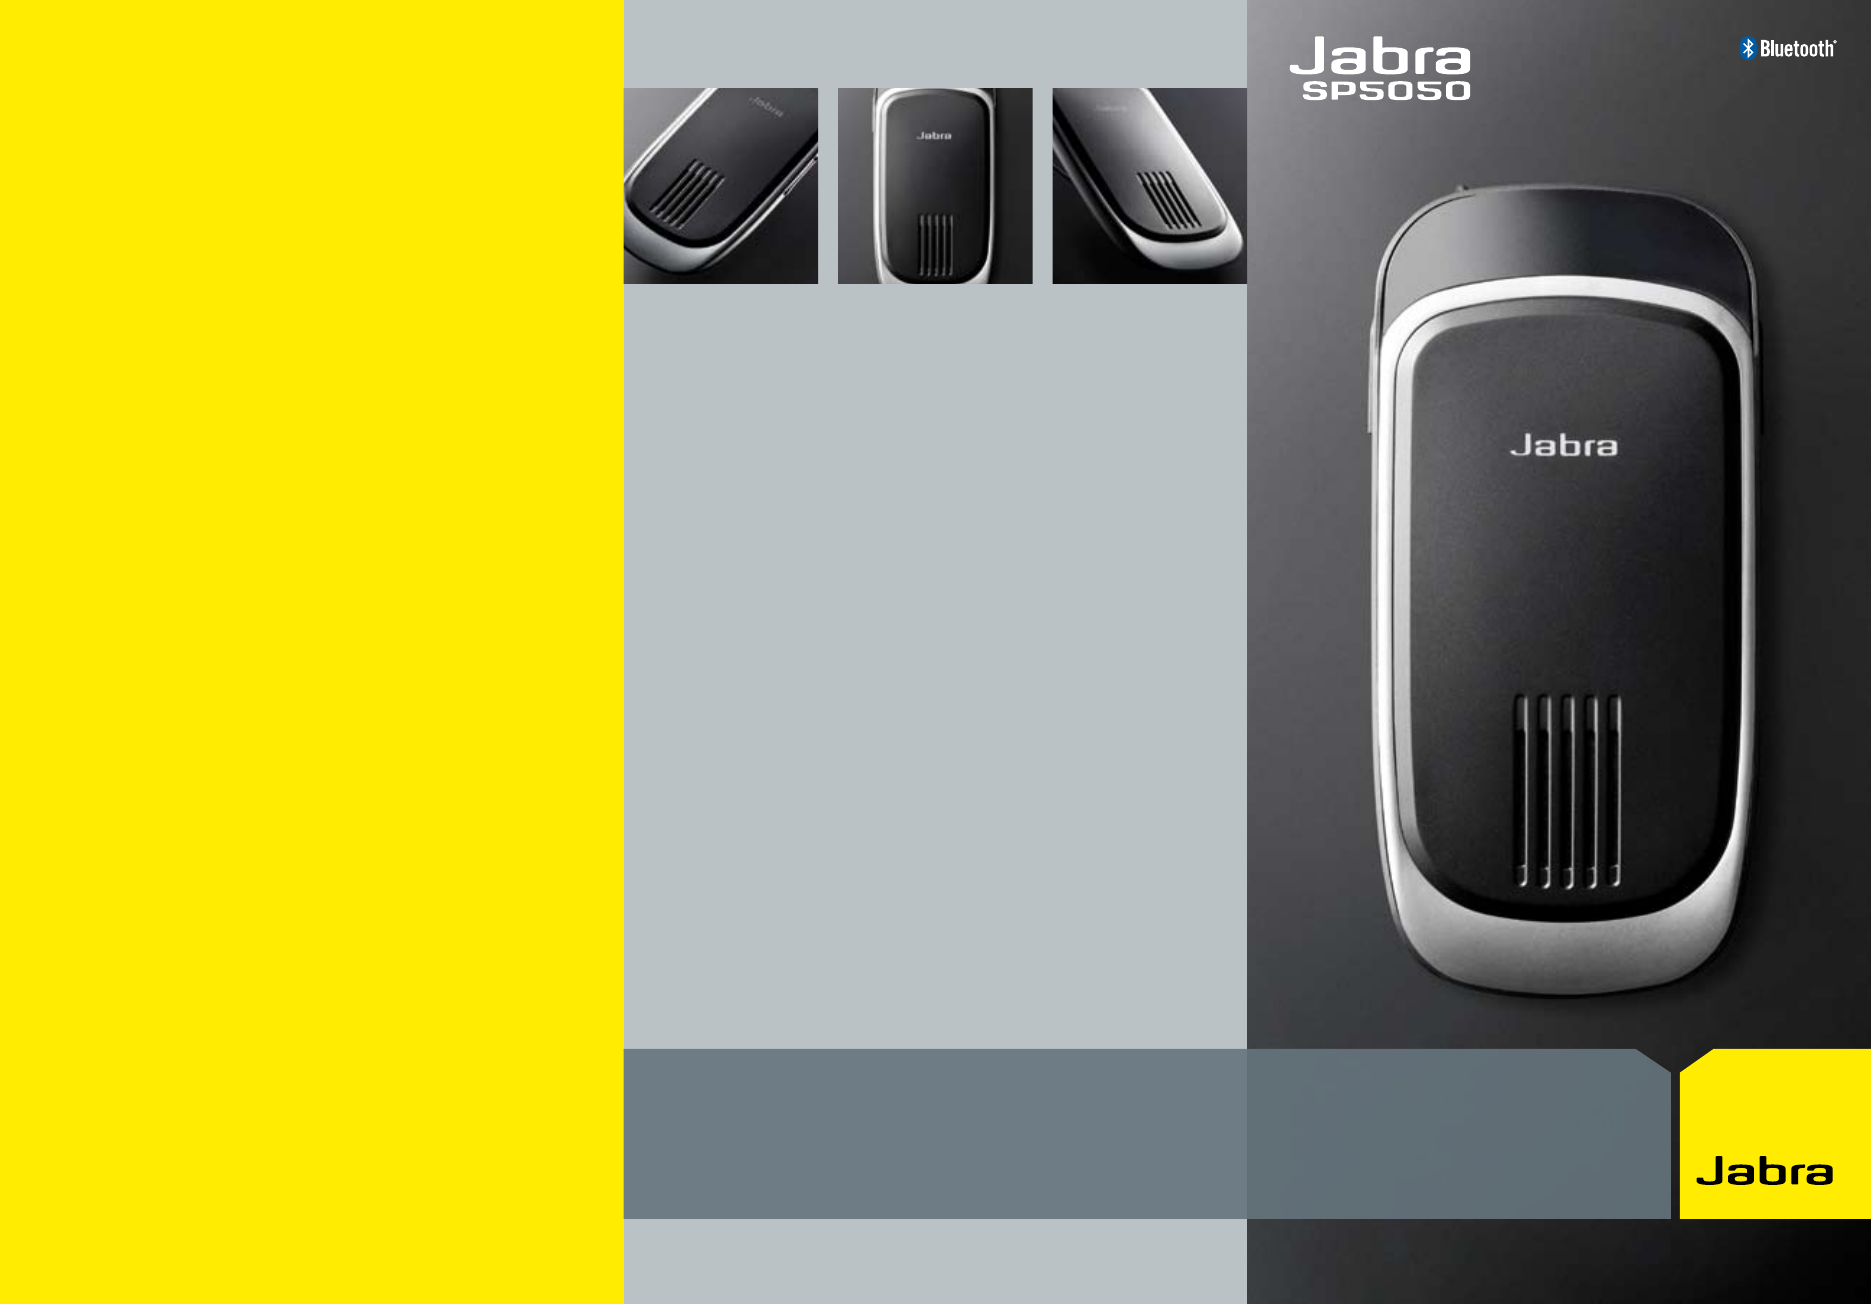 jabra conference phone sp5050 user guide manualsonline com rh phone manualsonline com Jabra Speakerphone Jabra Bluetooth Car Speaker